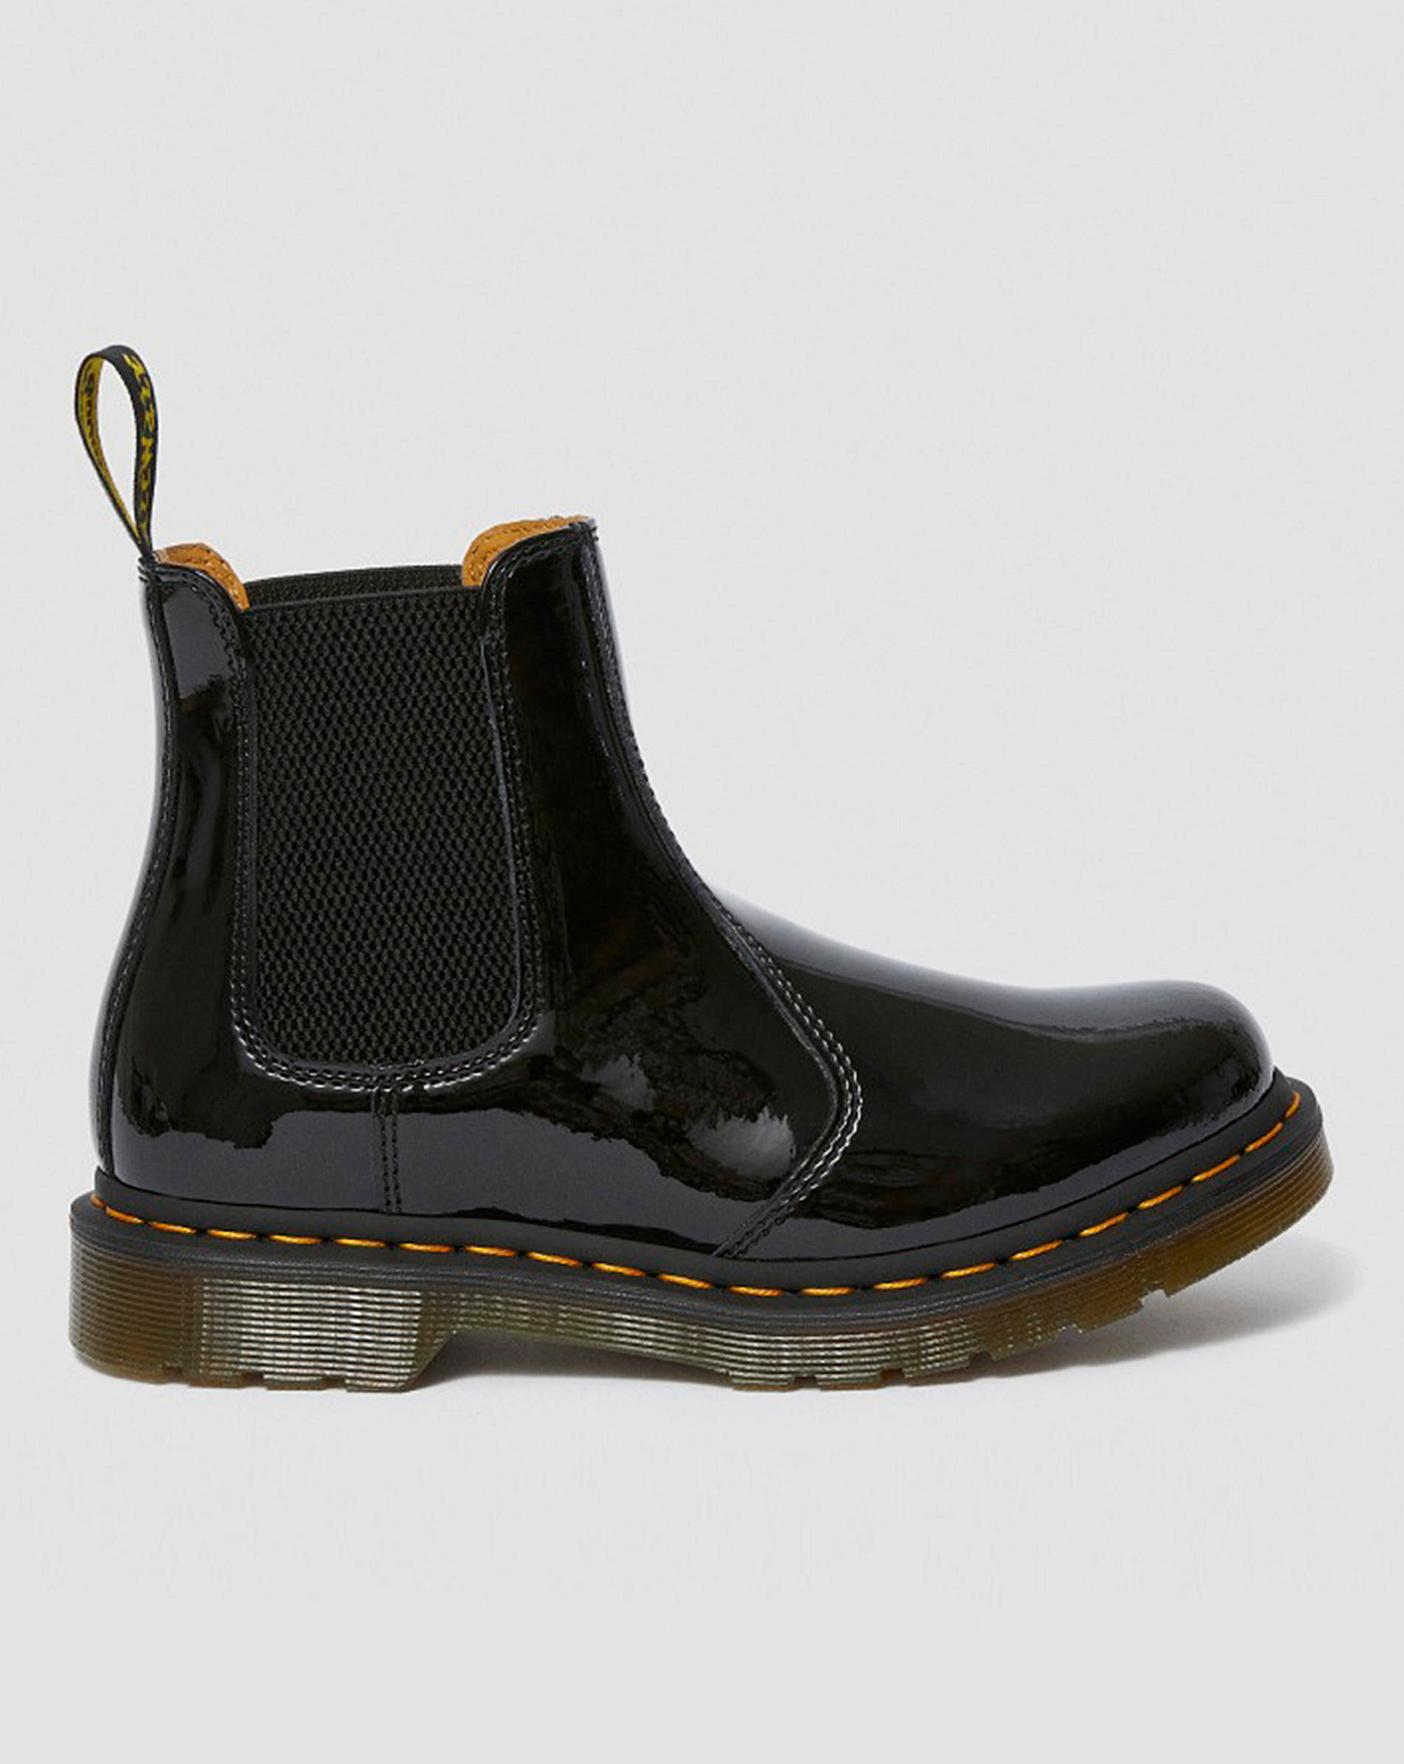 good out x 2019 discount sale search for newest Dr. Martens Vegan 2976 Boots